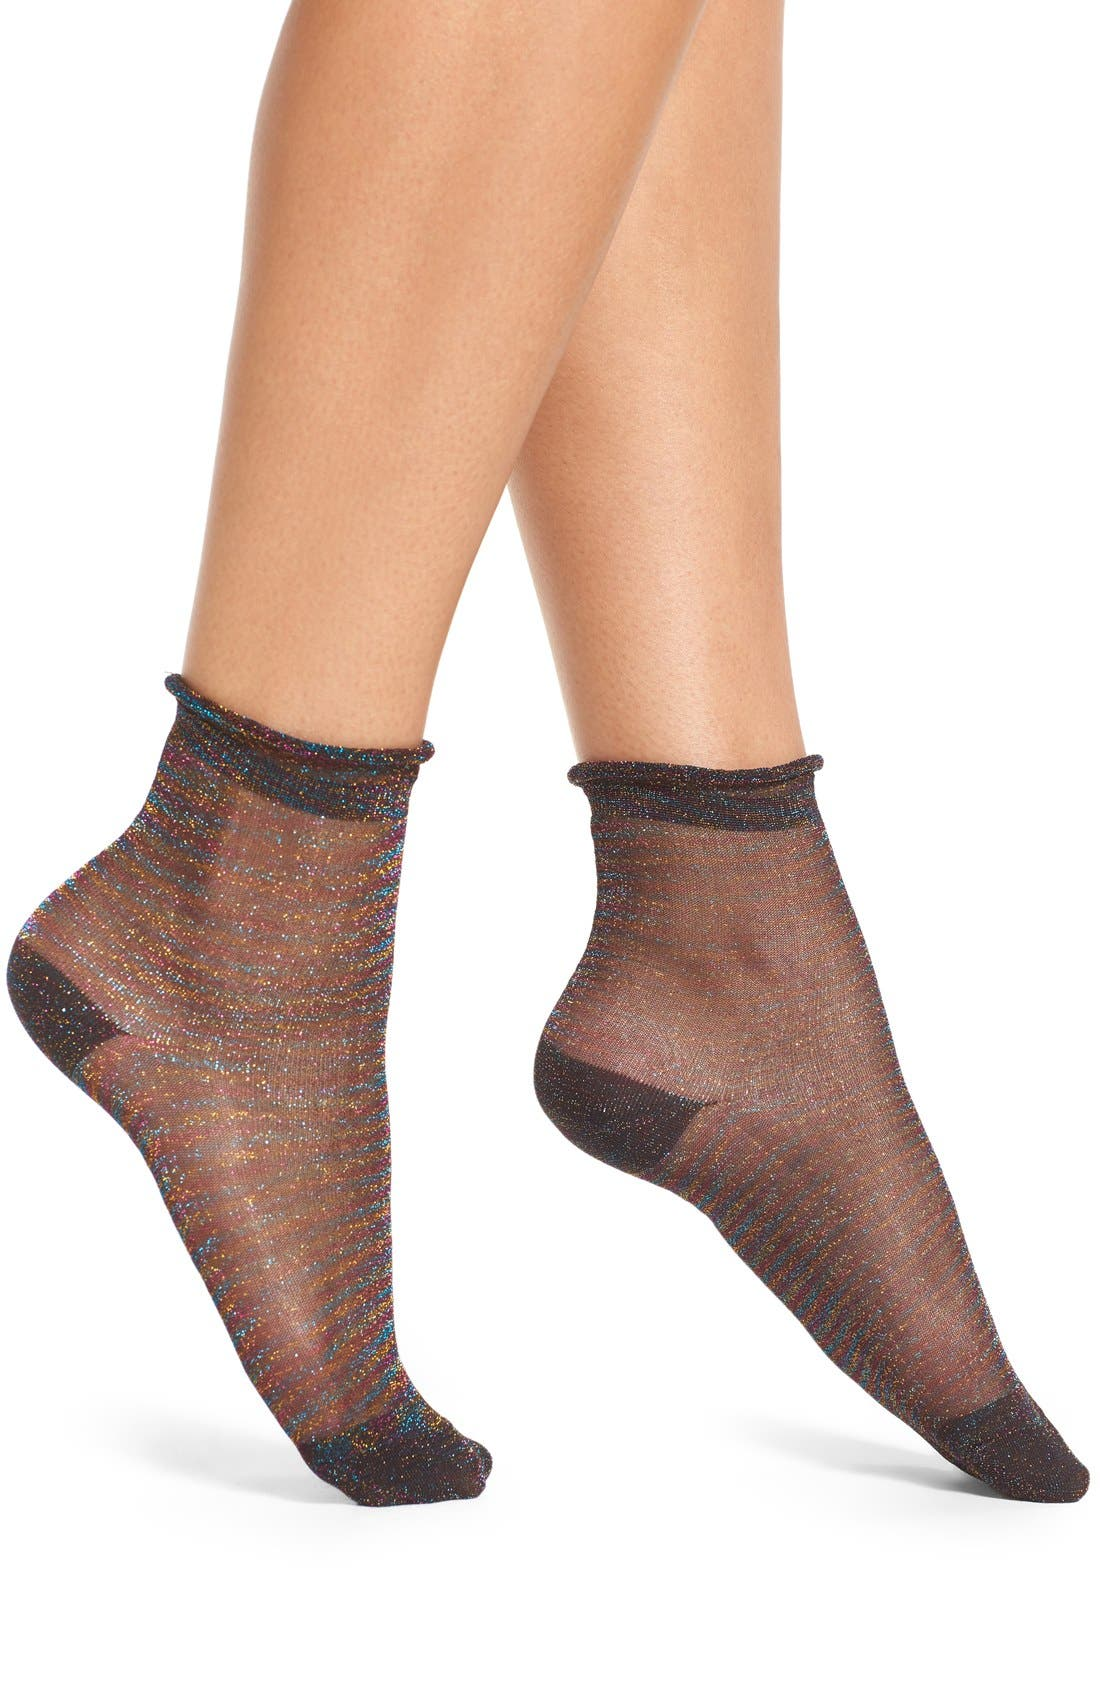 FREE PEOPLE, Glimmer Oasis Ankle Socks, Main thumbnail 1, color, 001